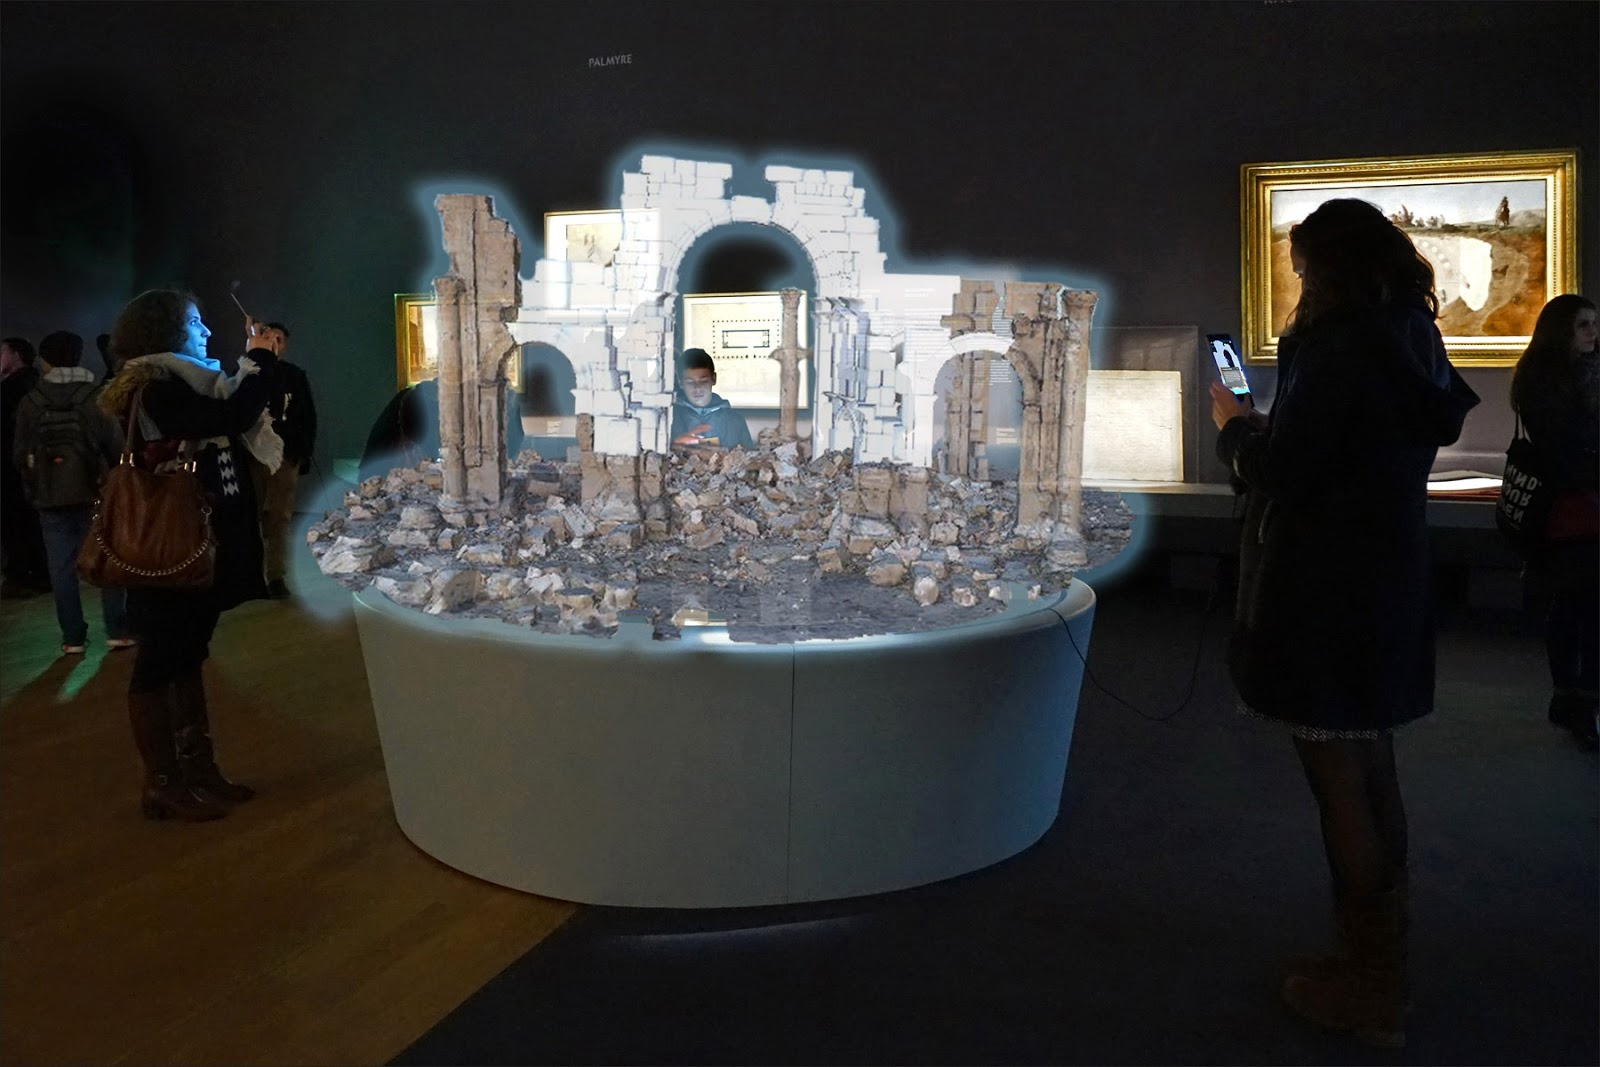 This image is a simulation of the AR experience: the life-size 3D arch was visible on the device screen.